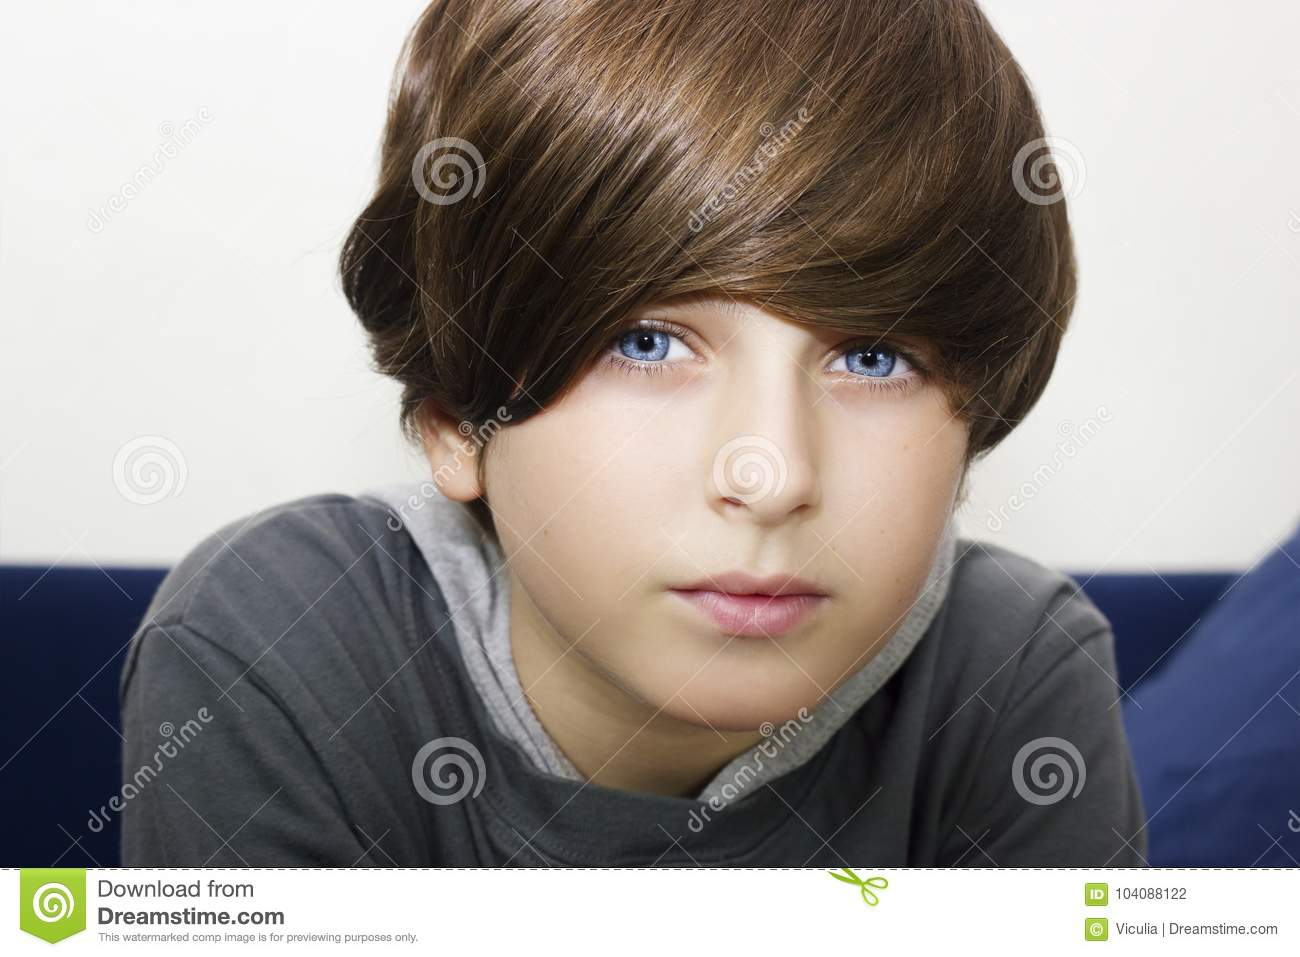 A Portrait Of A Handsome Blue Eyes Boy Kid Possing Stock Photo